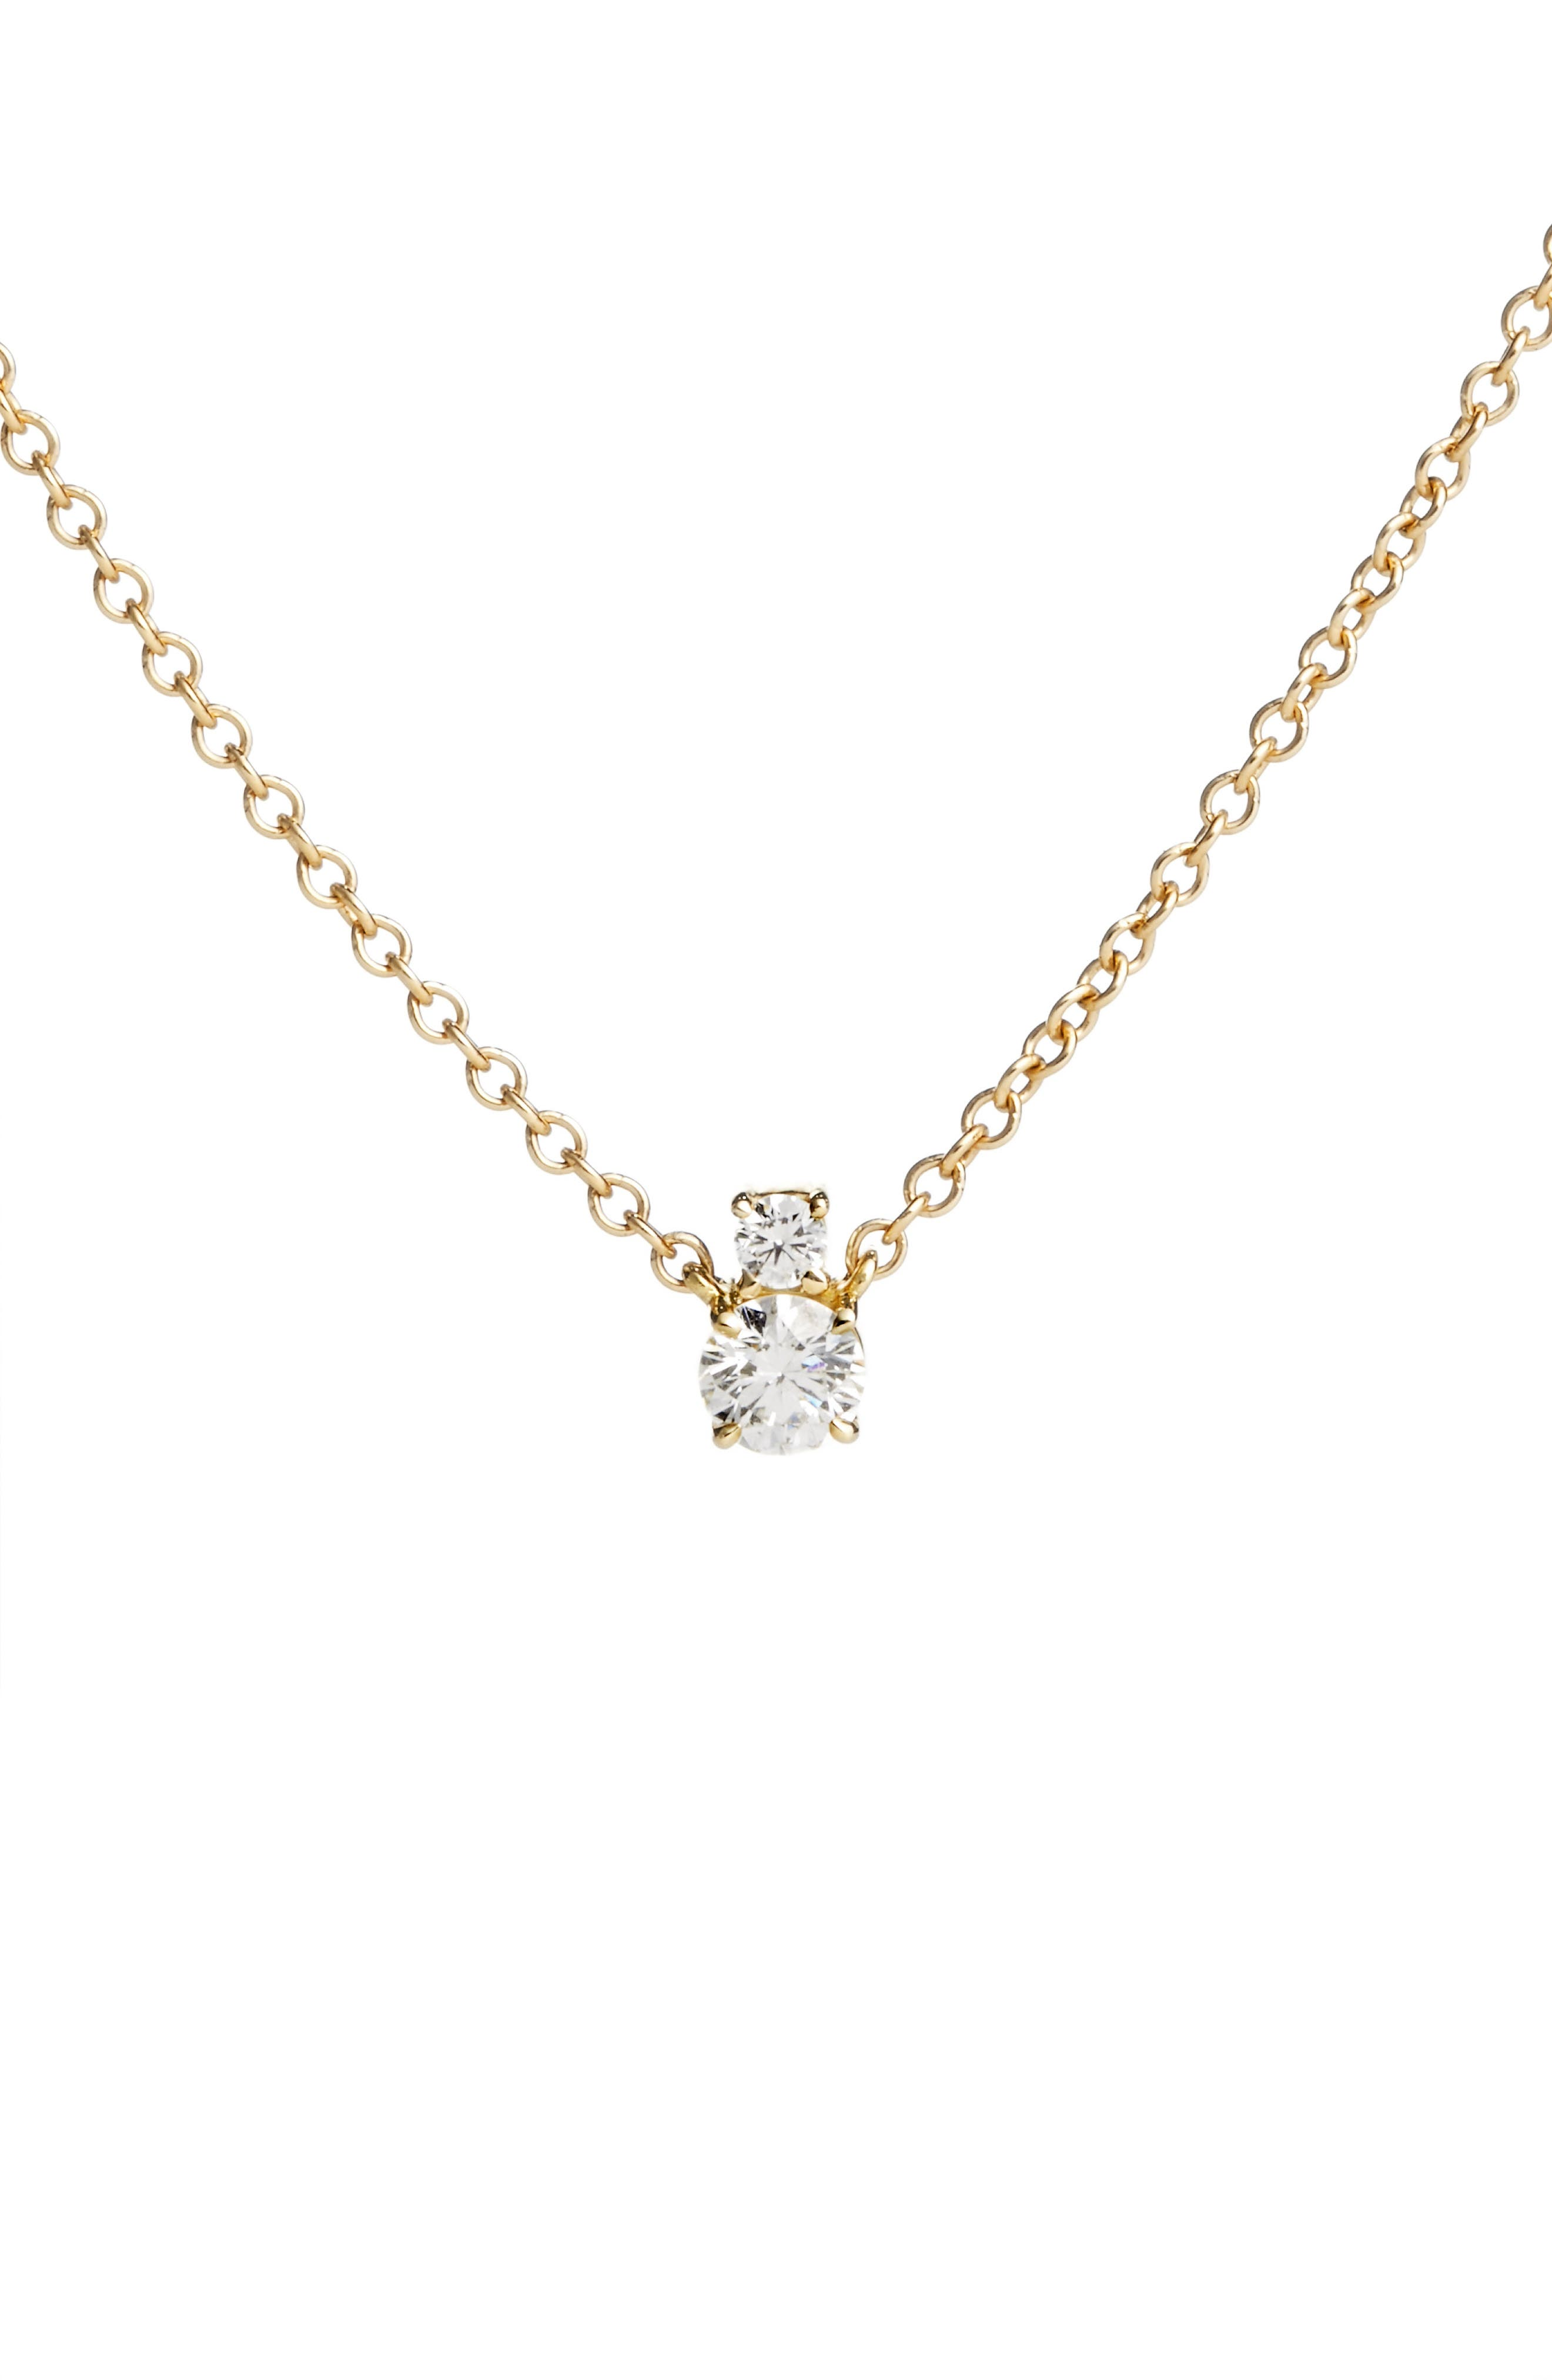 Alternate Image 1 Selected - Jemma Wynne Prive Luxe 18K Gold & Diamond Solitaire Necklace